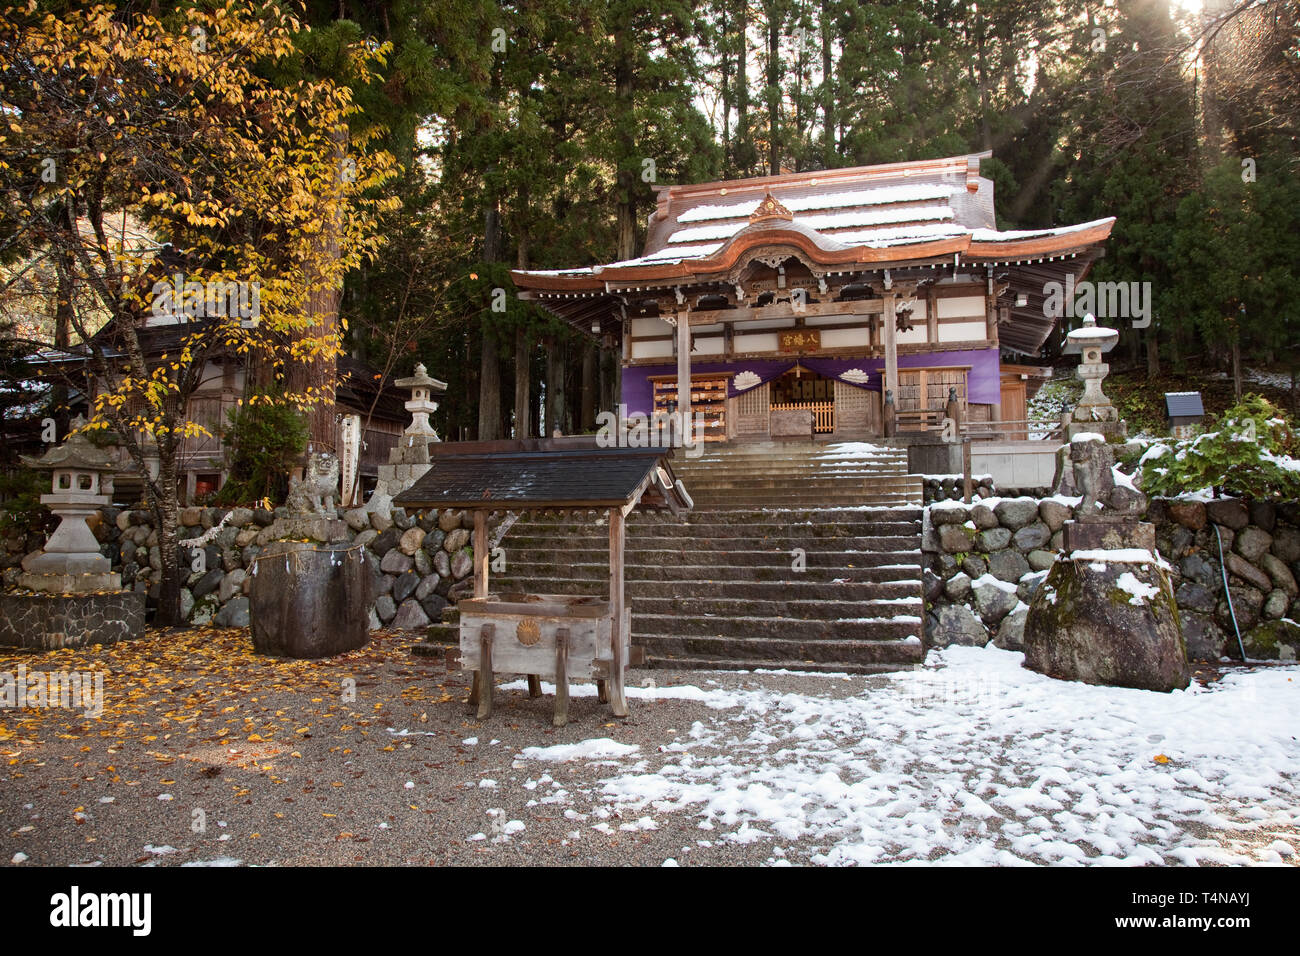 First snow of the year melts at the Shirakawa Hachiman shrine, Shirakawa-go village, Japan and featured in the anime Higurashi When They Cry - Stock Image